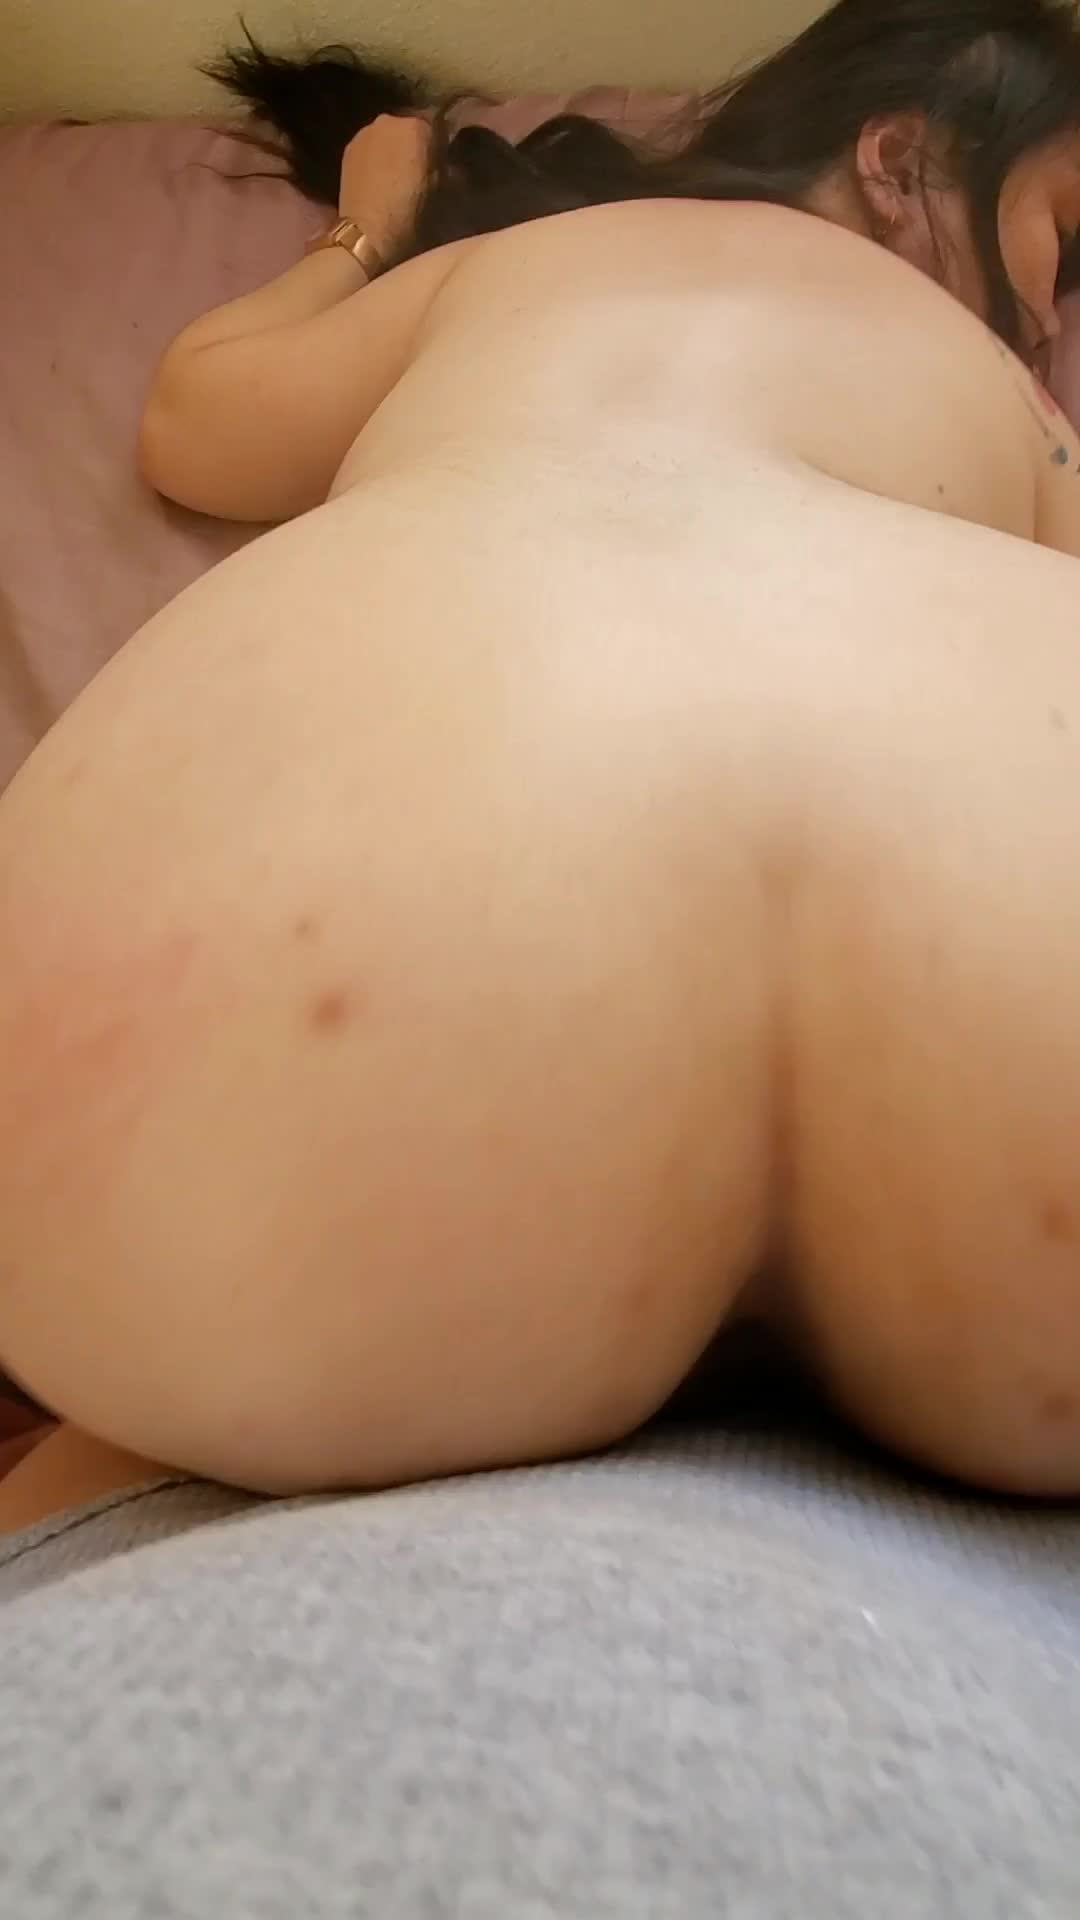 Don't you love the way my pussy grips when I fuck myself on his cock